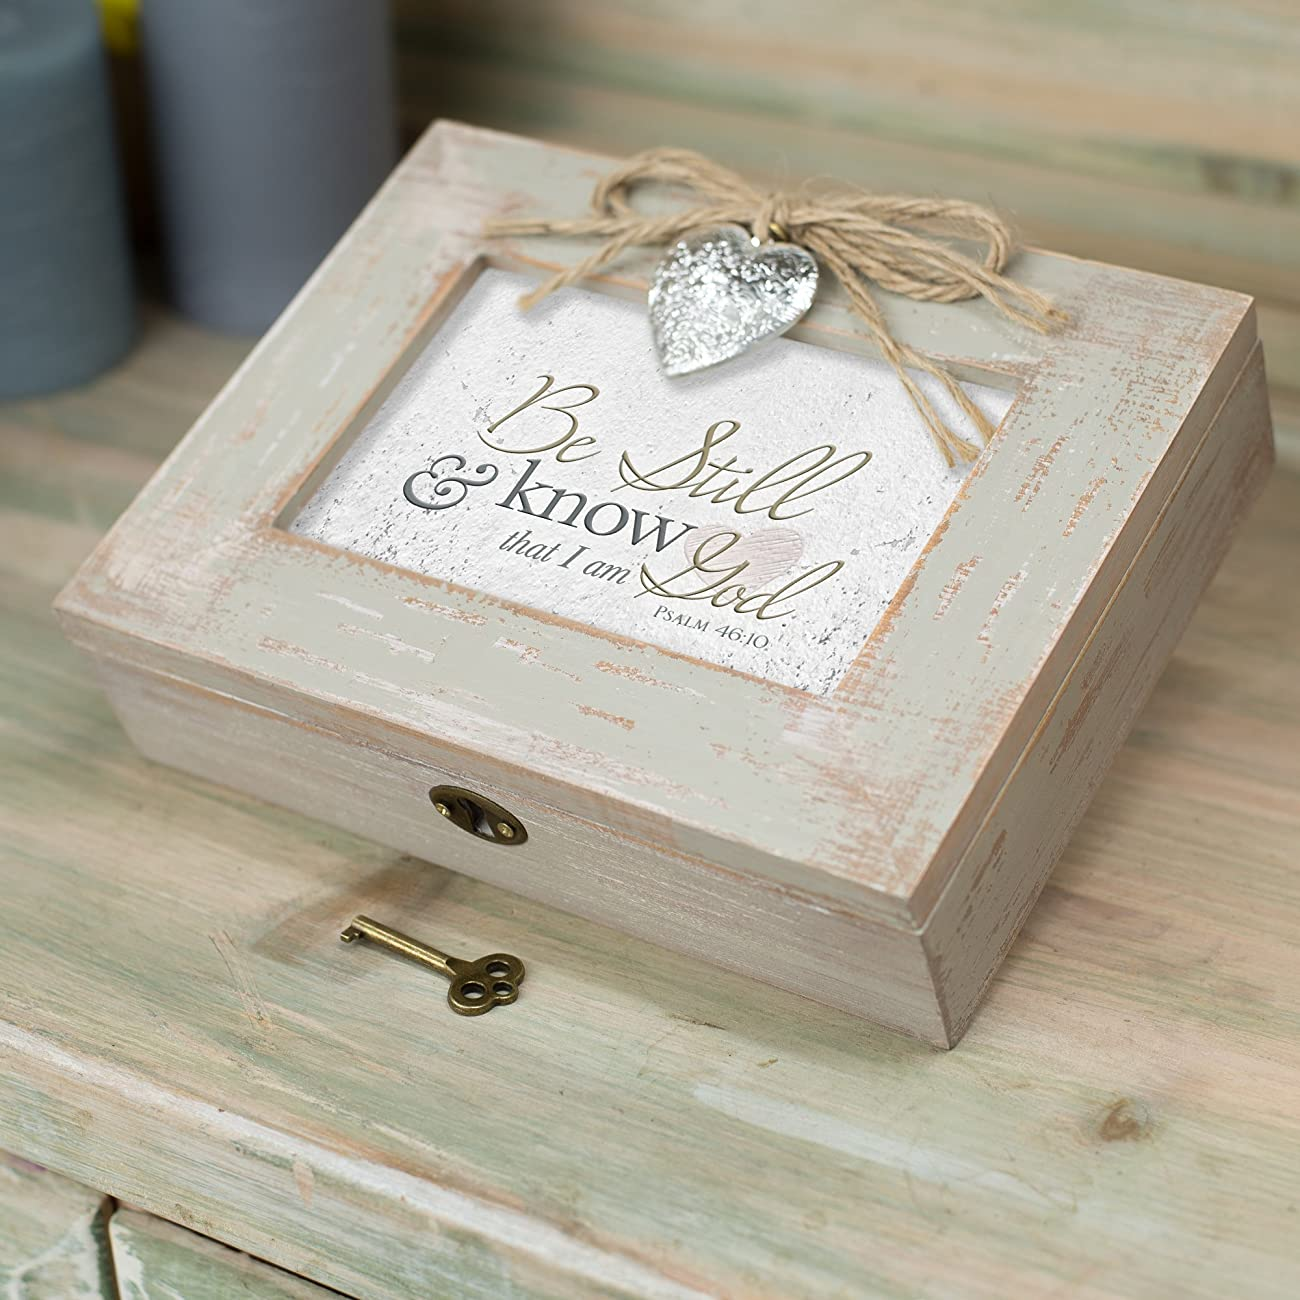 Be Still & Know That I am God Distressed Wood Locket Jewelry Music Box Plays Tune Amazing Grace 2